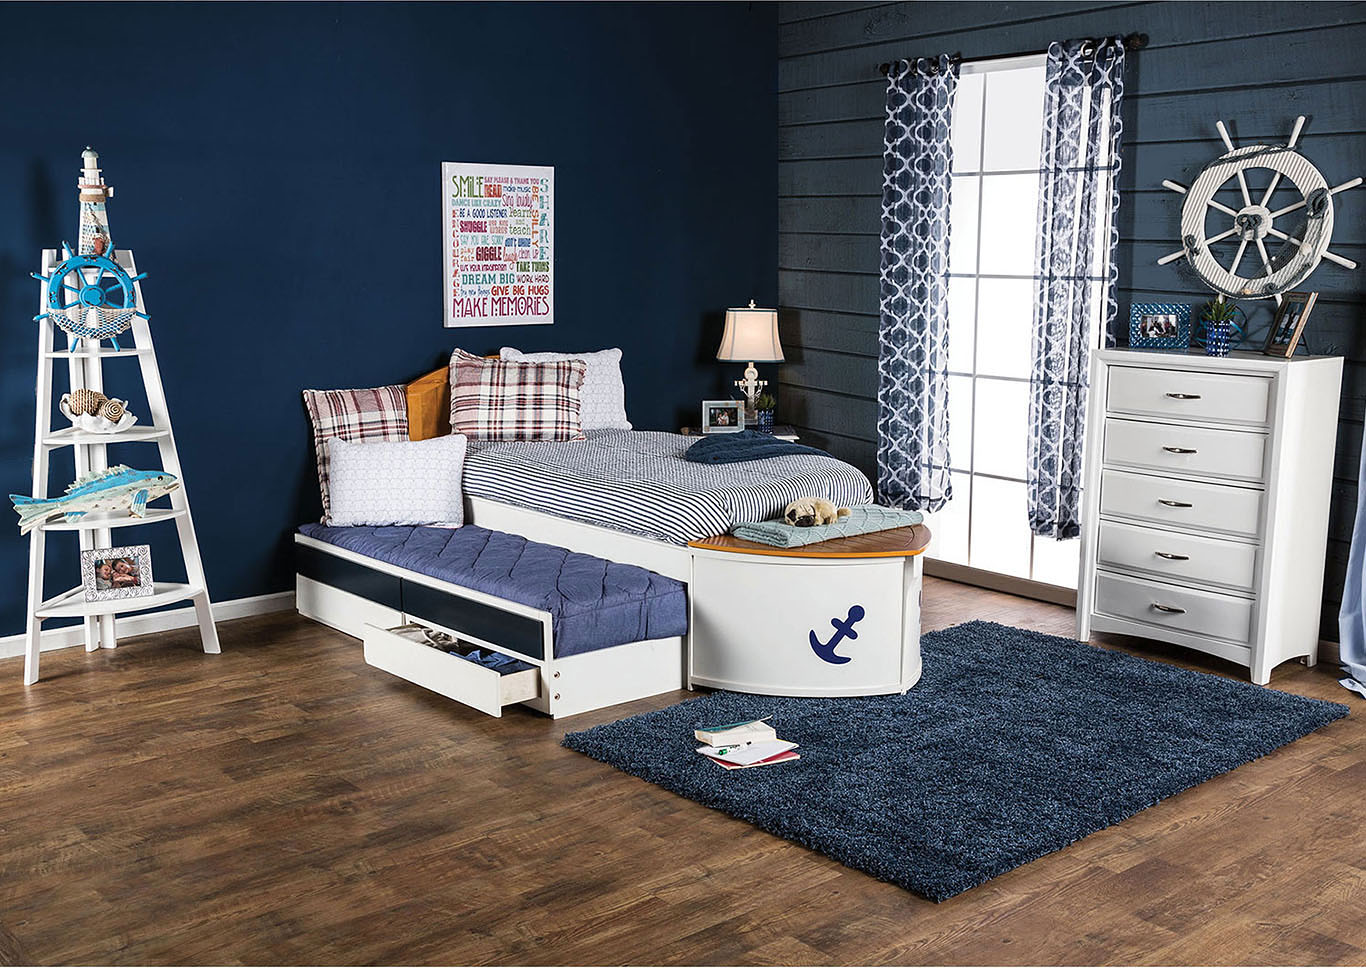 Voyager White/Oak/Navy Blue Full Captain Bed w/Trundle and Drawers,Furniture of America